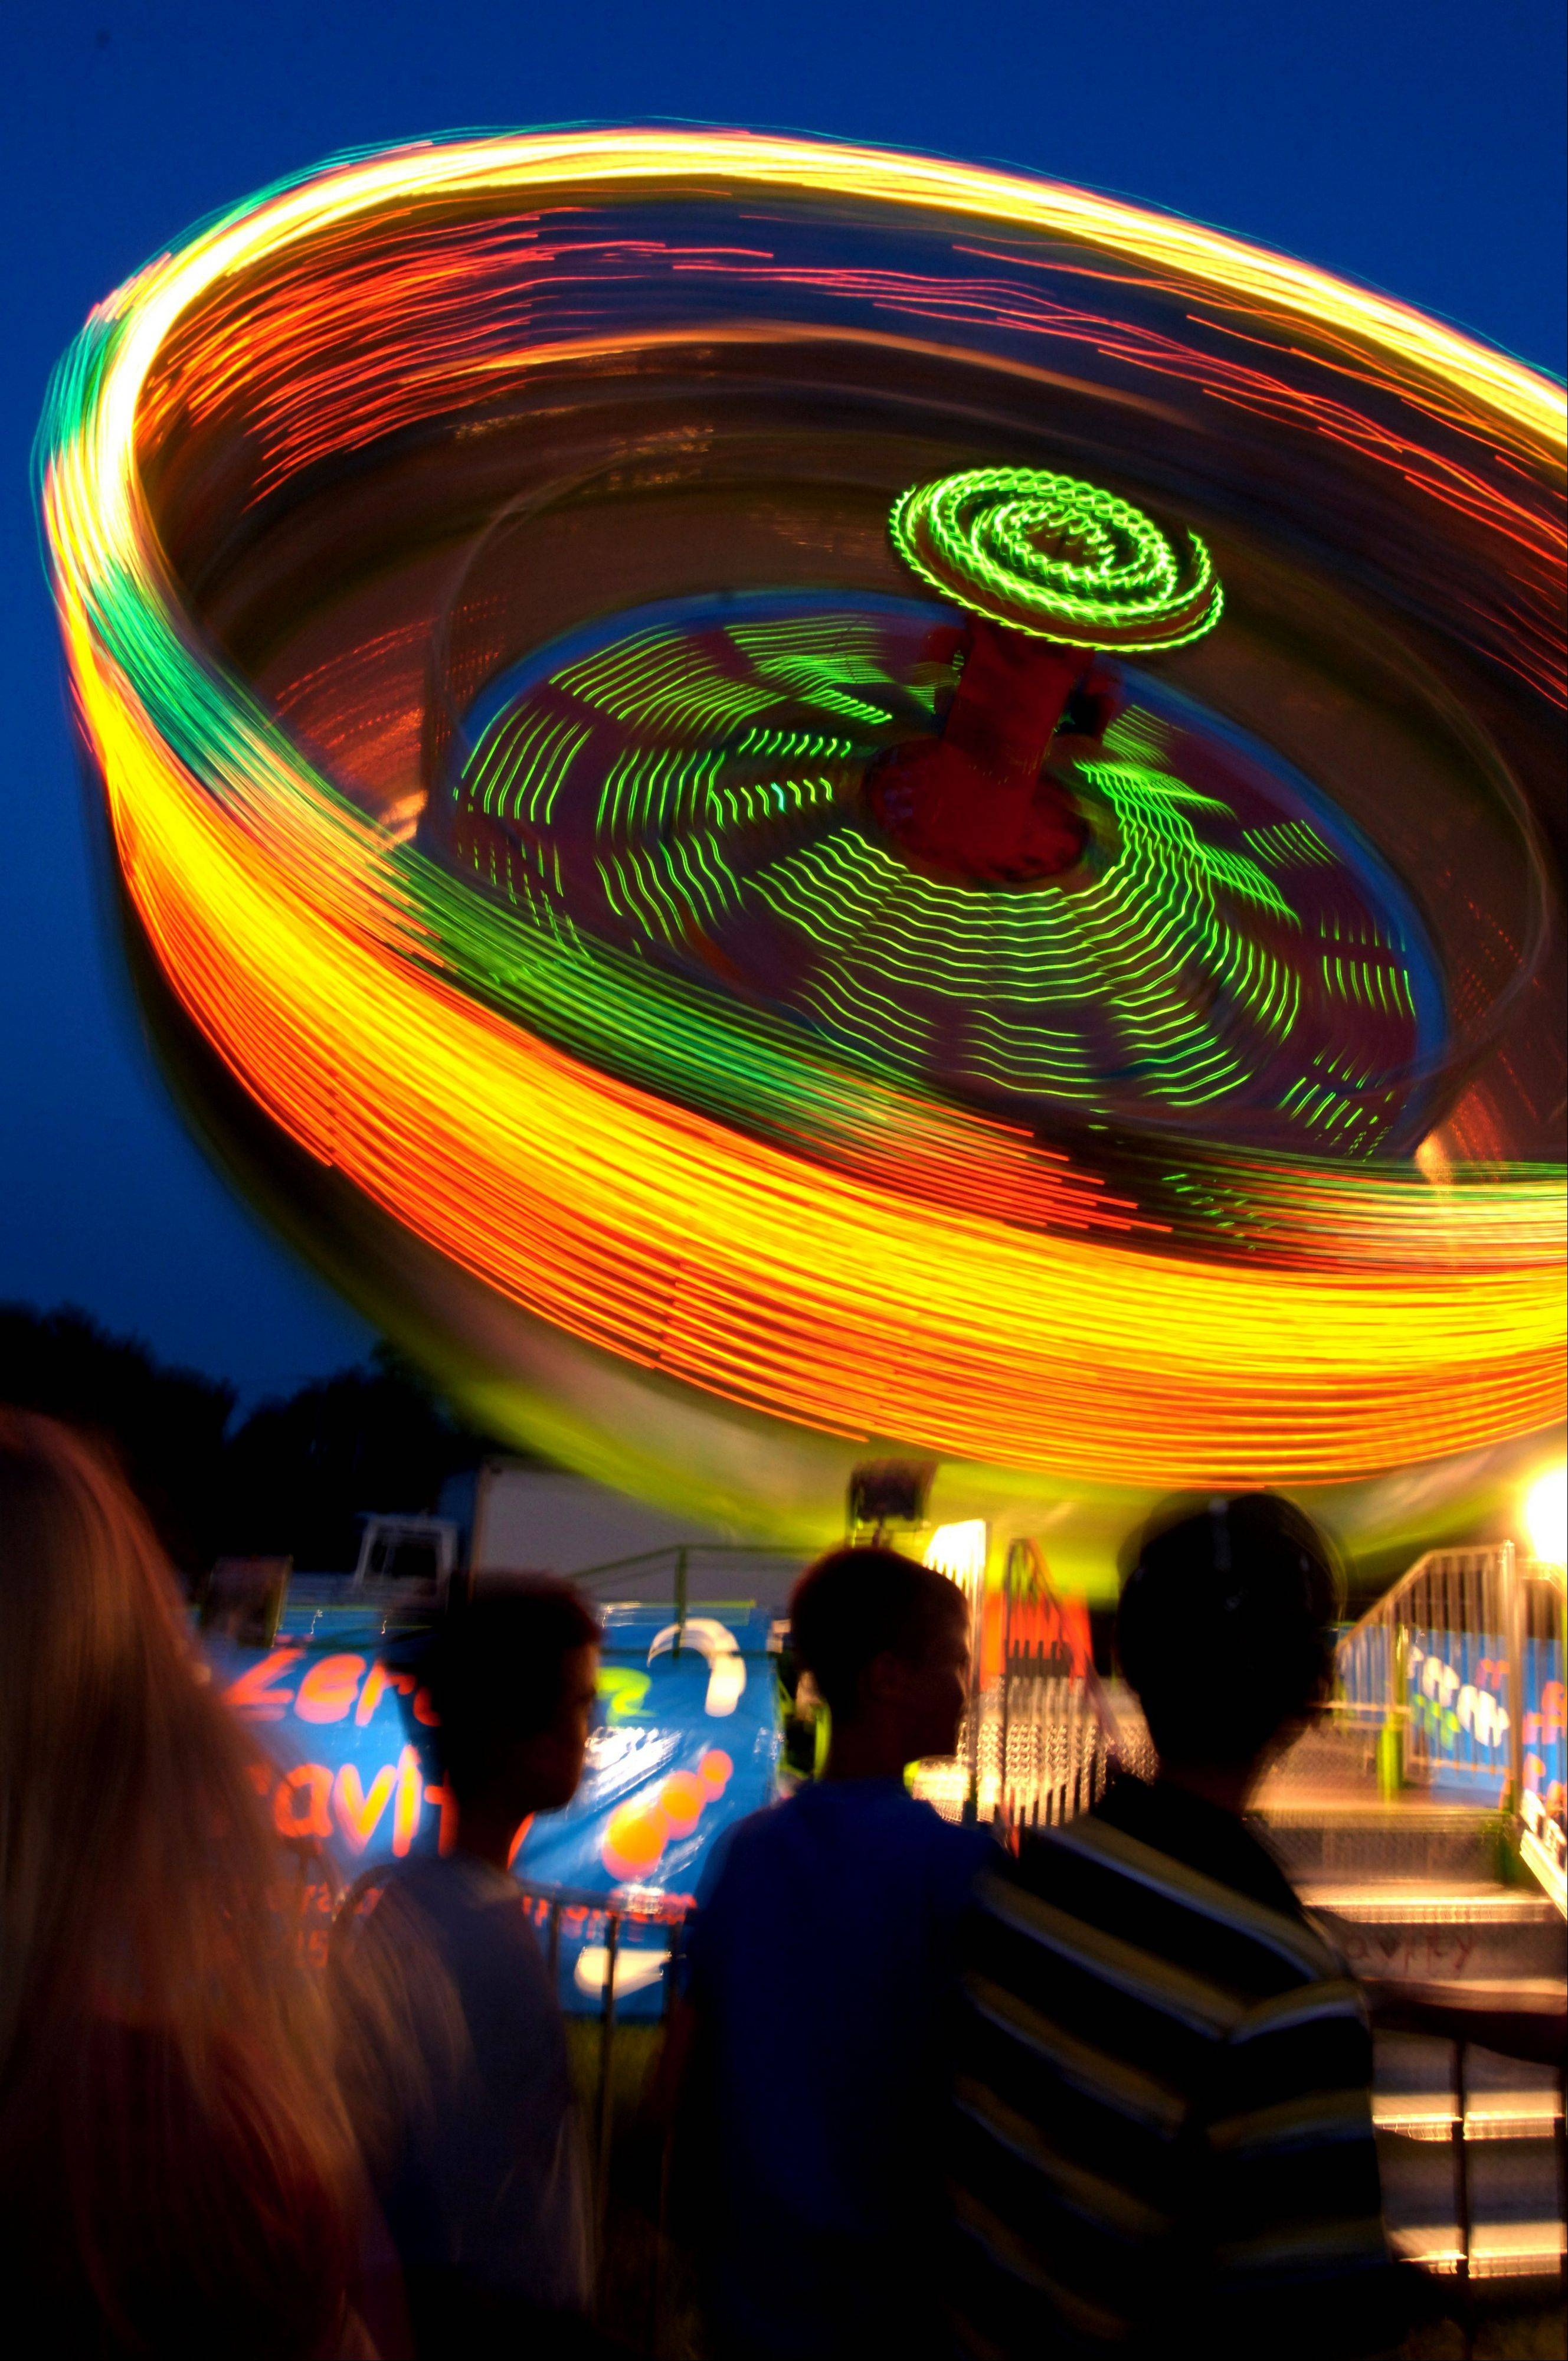 A time exposure of a ride at the Mount Prospect festival.